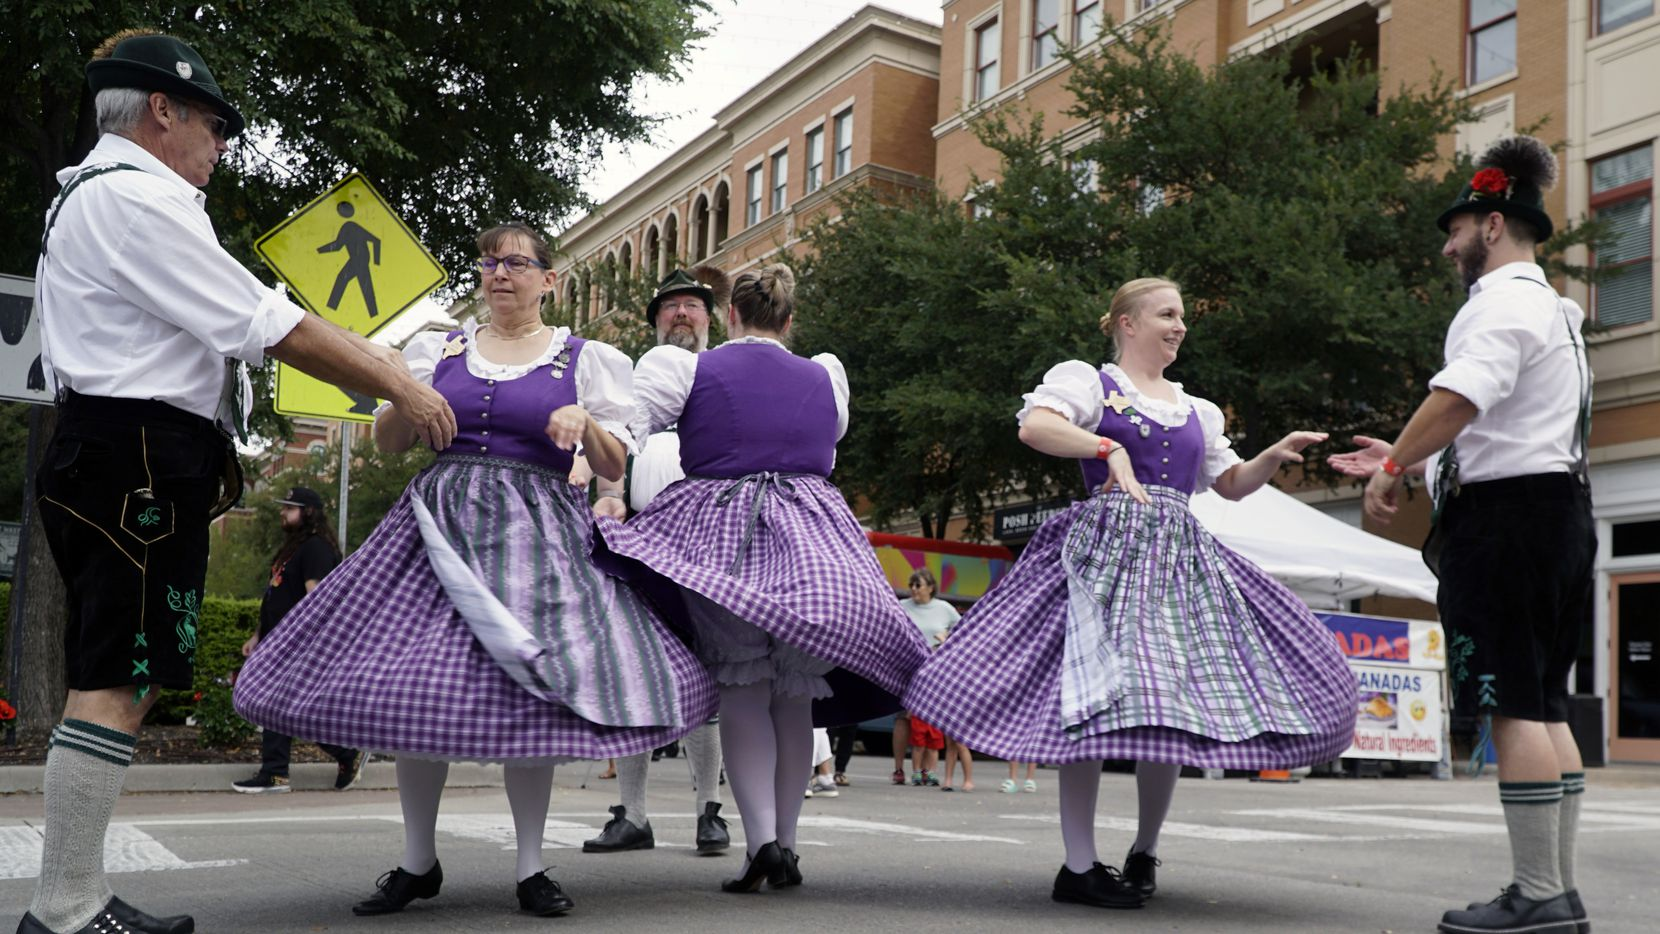 Dancers perform at the 2nd Annual Oktoberfest at Frisco Square in Frisco, Texas on Saturday, October 2, 2021. (Lawrence Jenkins/Special Contributor)